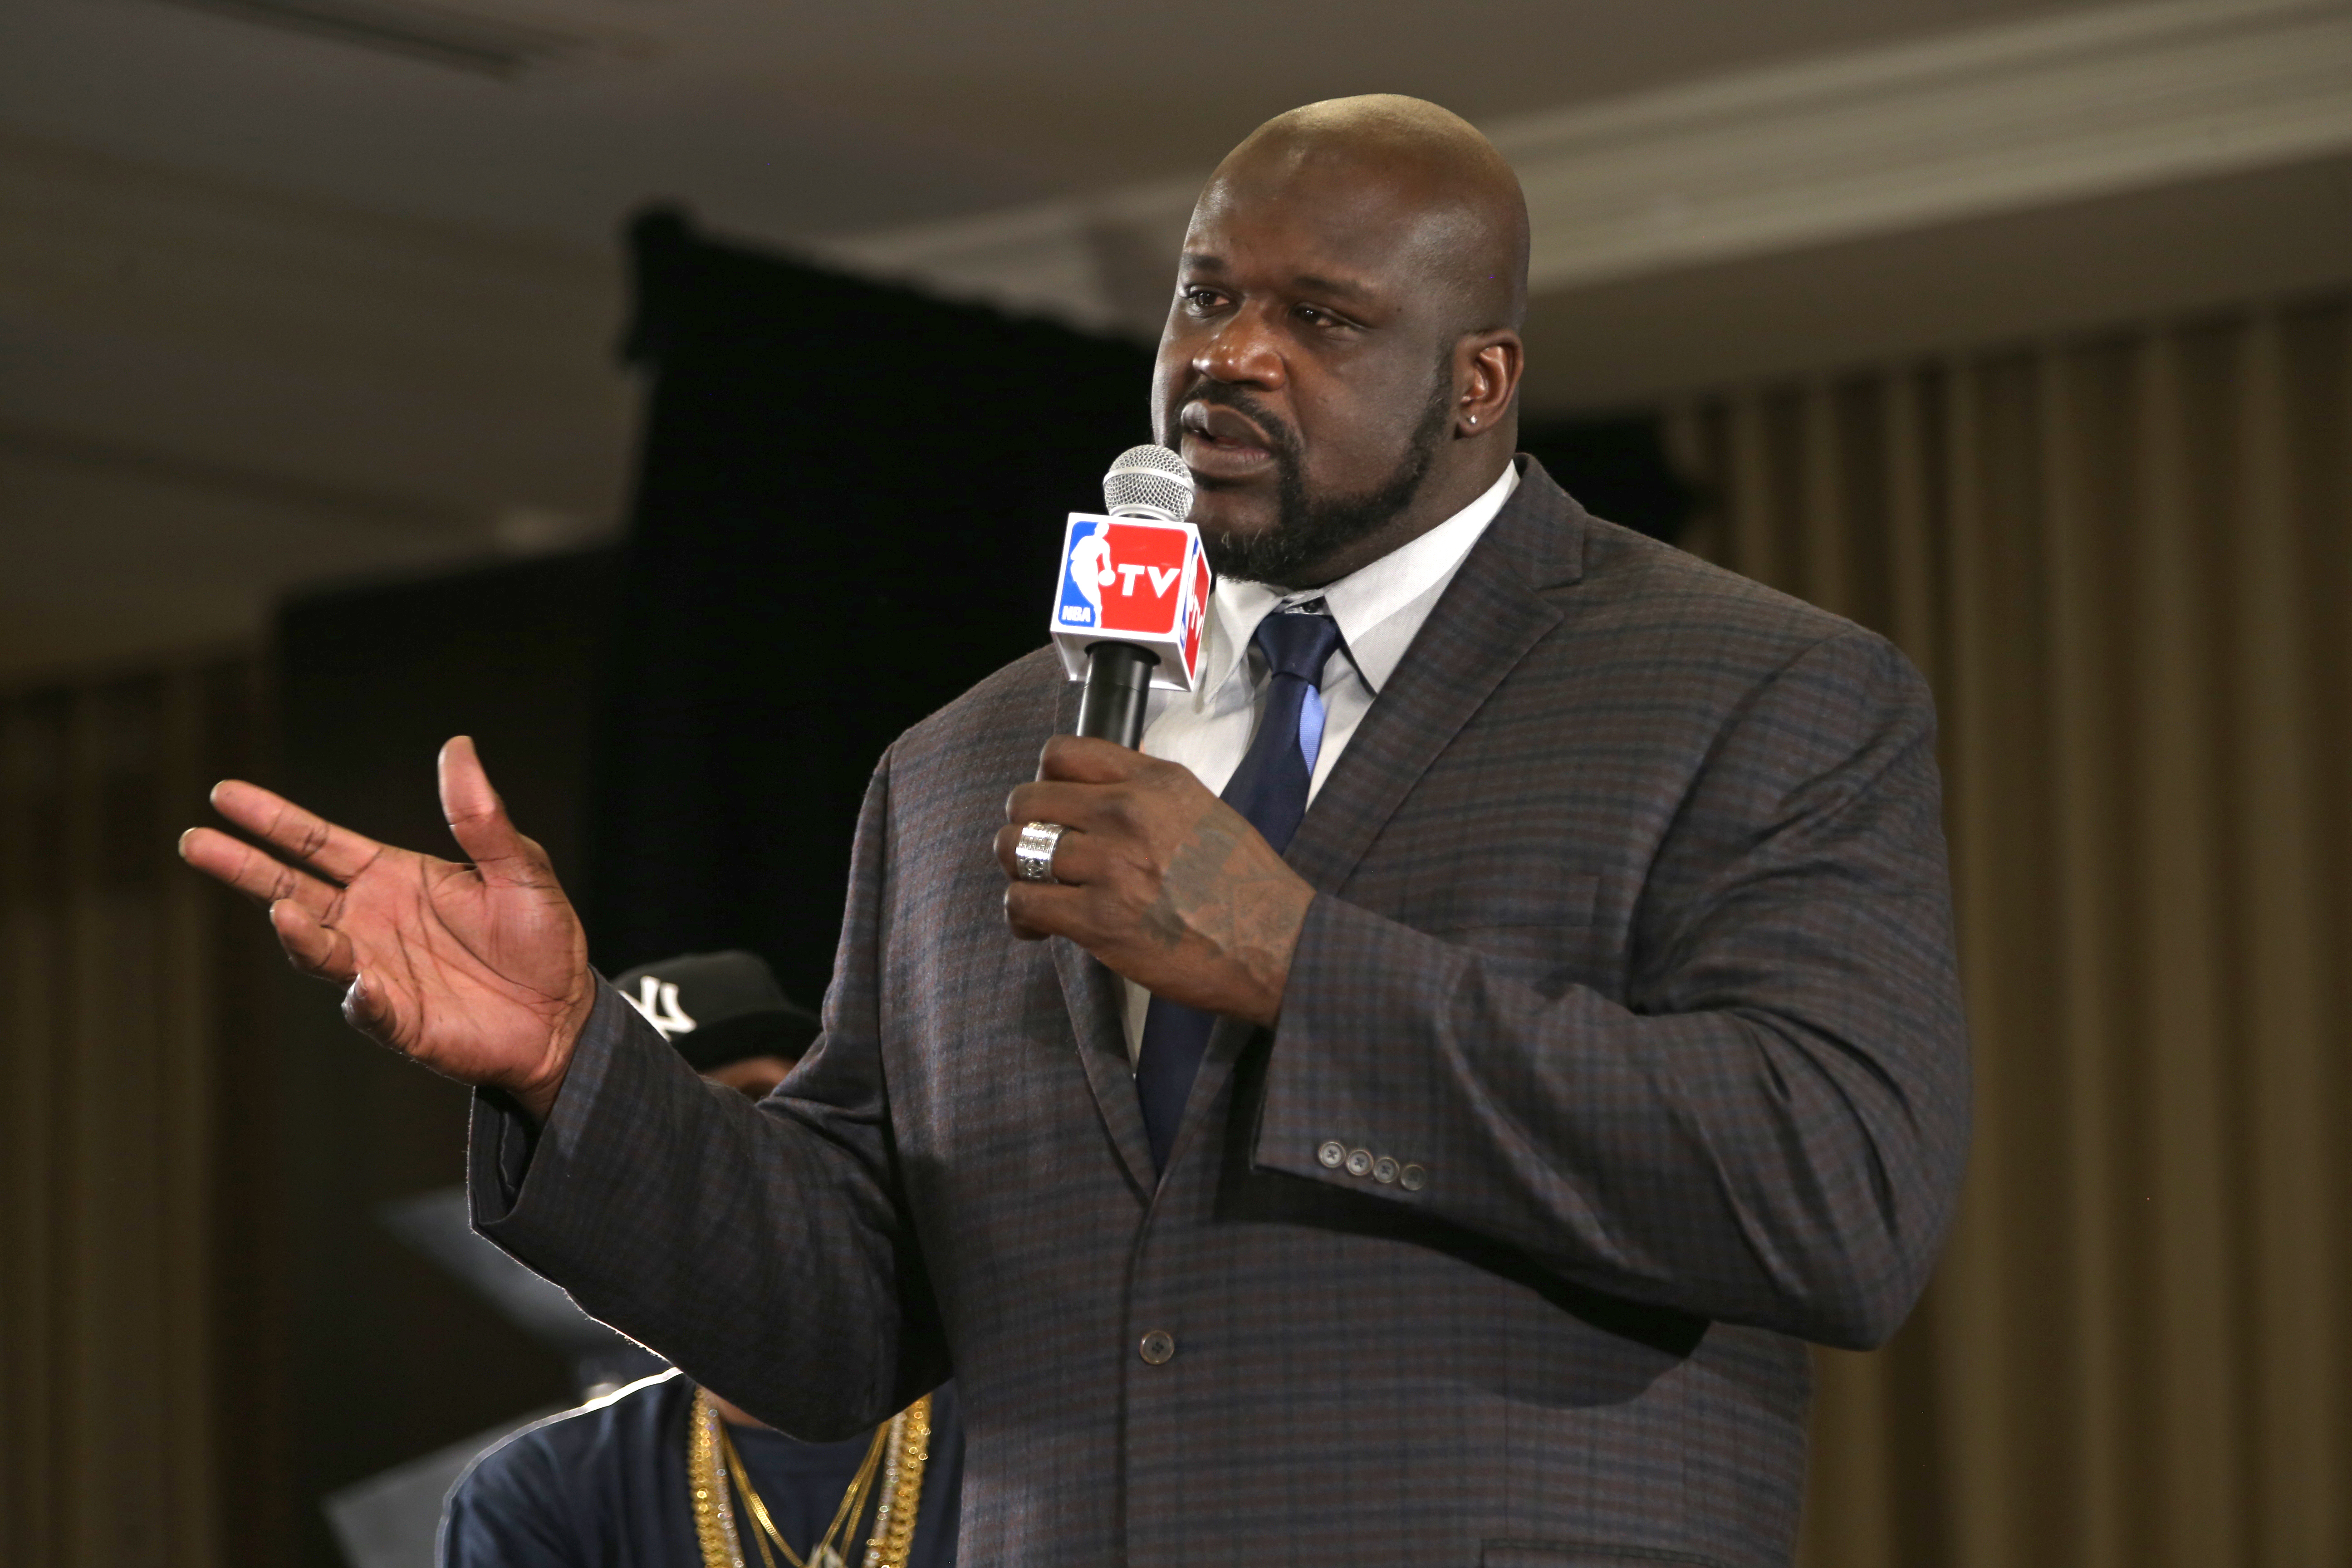 Shaquille O'Neal is announced as one of the finalist for the the Naismith Memorial Basketball Hall of Fame class of 2016.